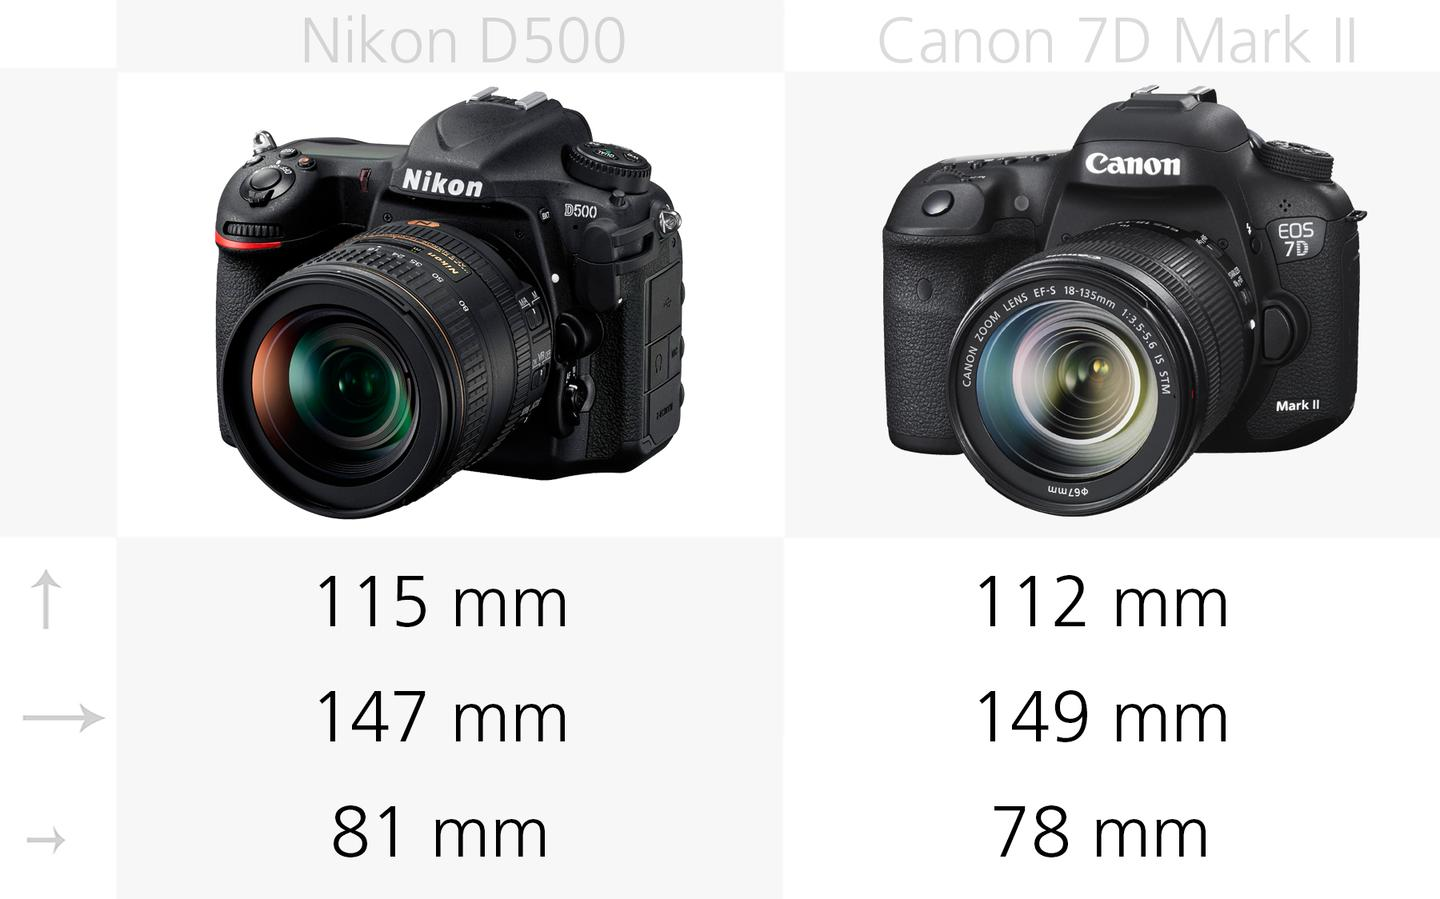 Size comparison of the Nikon D500 and Canon 7D Mark II